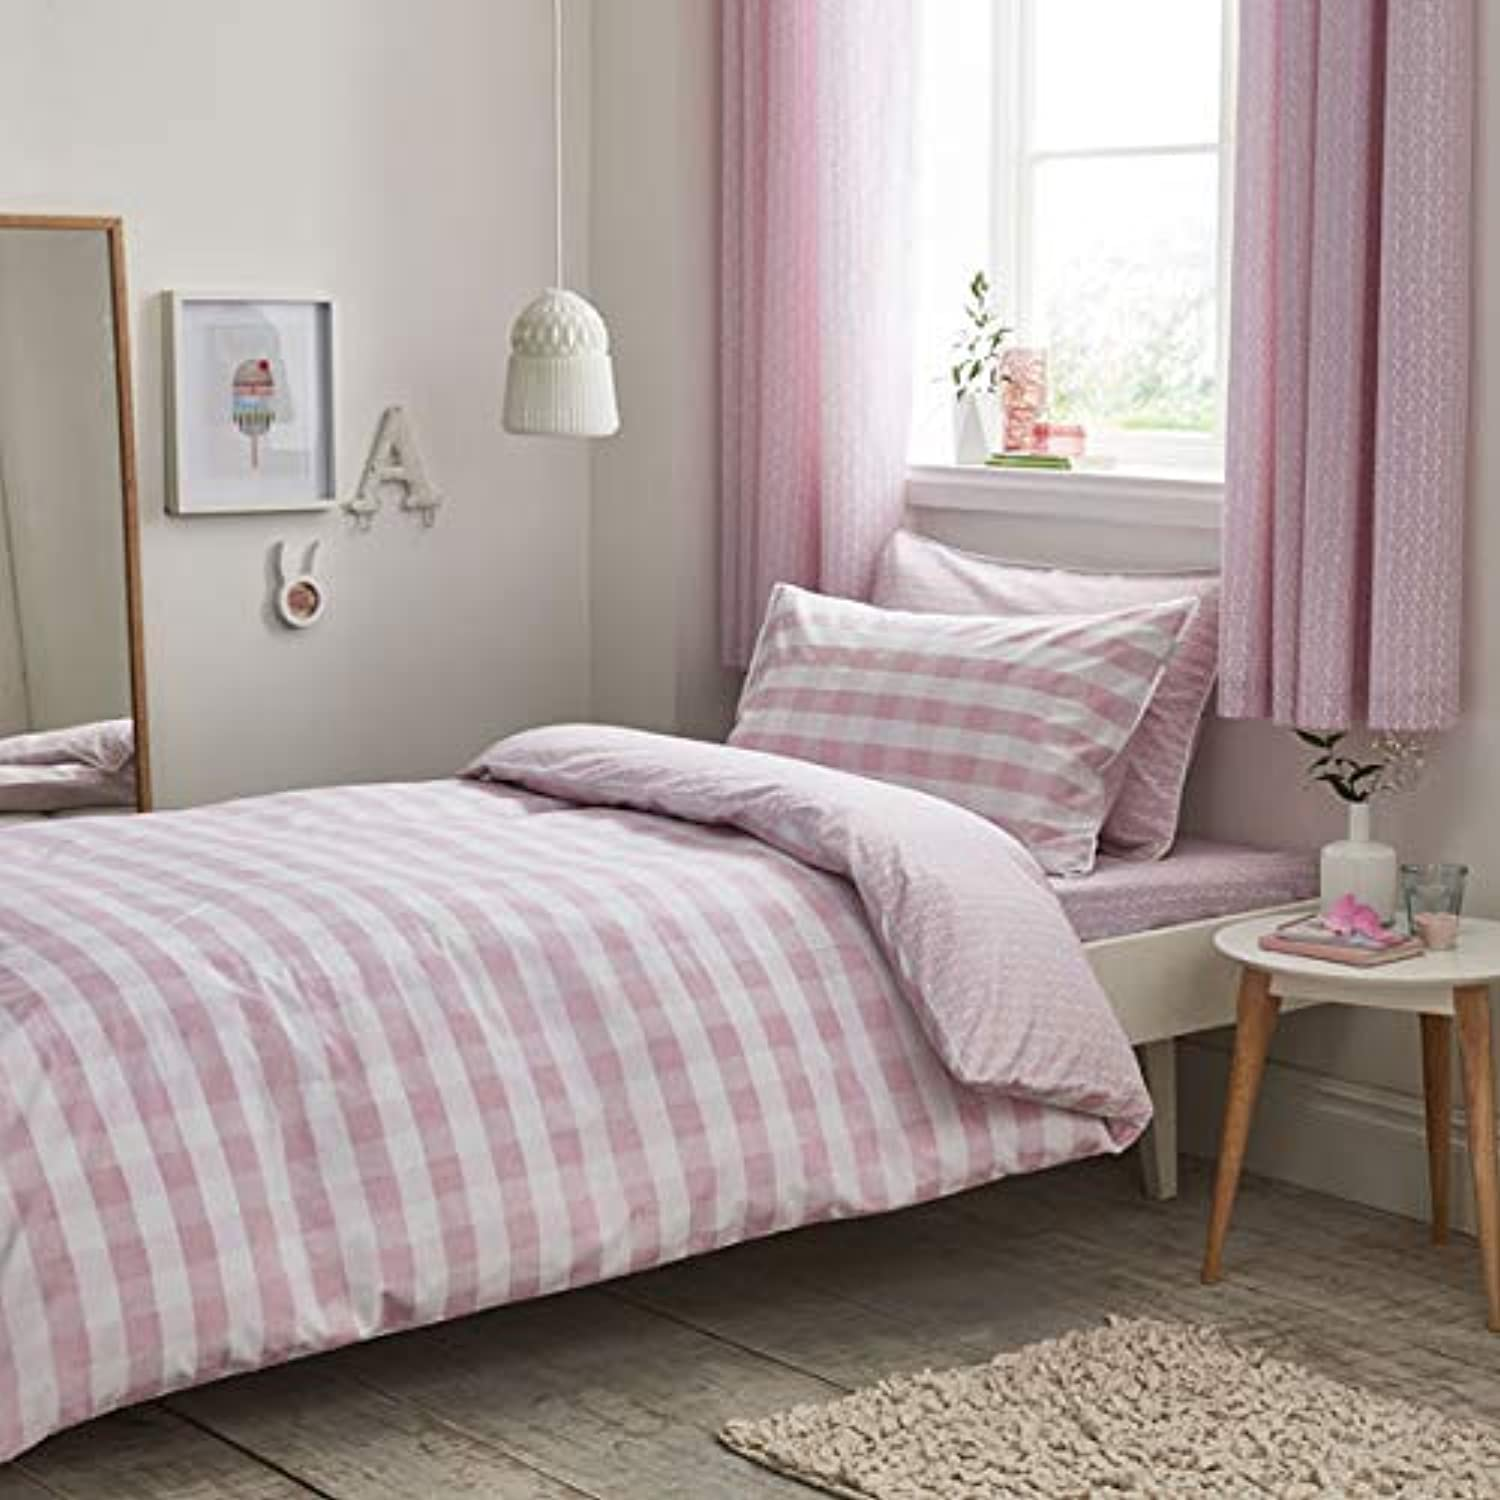 Kids white 100% Cotton Soft Duvet Cover Set - Gingham Print bluesh Pink - UK Single